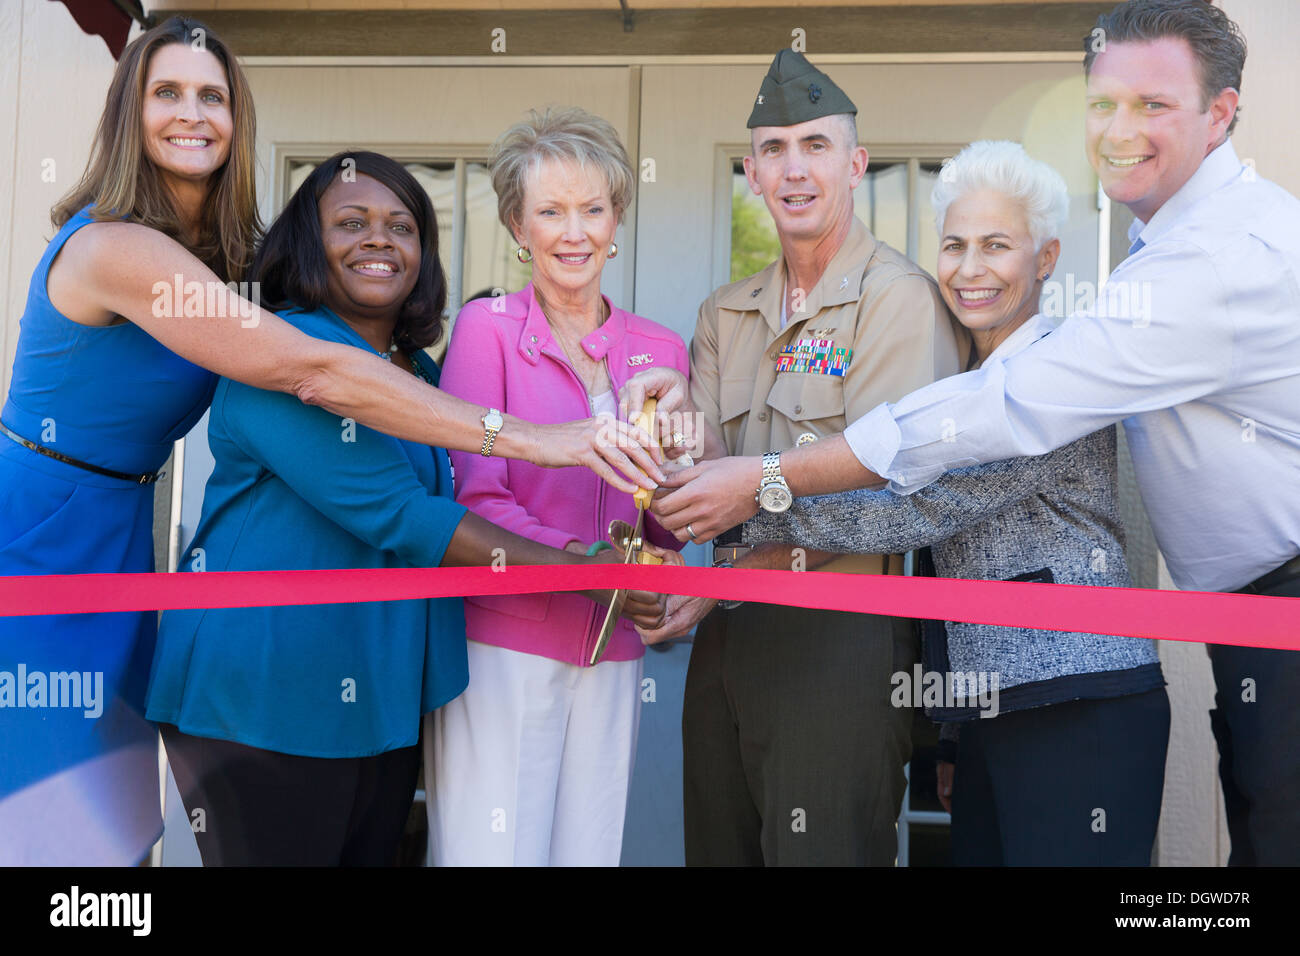 The Marine and Family Program Behavioral Health branch unveils its Community Counseling Center aboard Marine Corps Air Station Miramar, Calif. Oct. 18. From left to right, Deanna Angel, Behavioral Health Branch director, Mary Bradford, Community Counselin - Stock Image